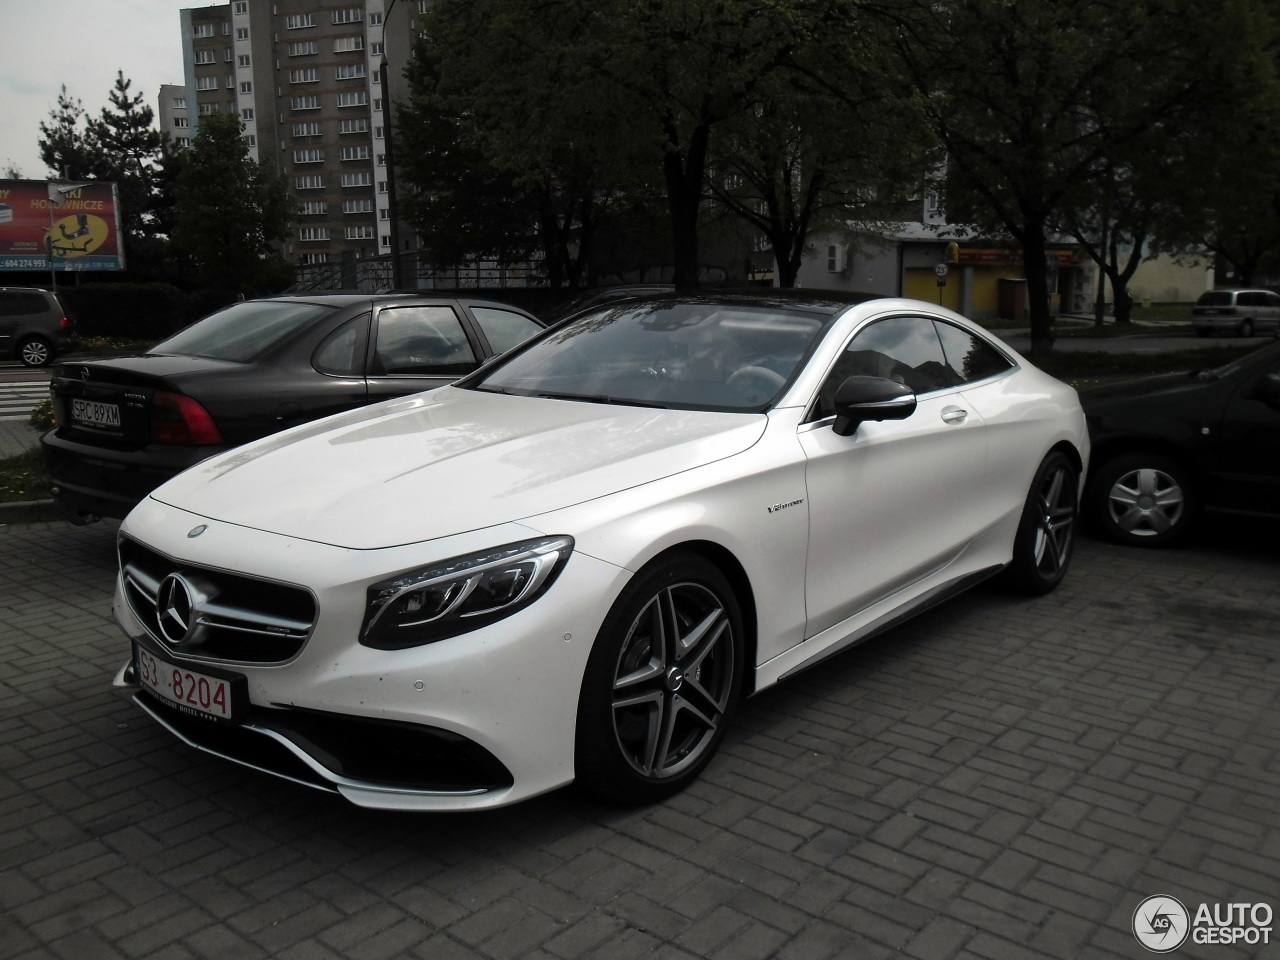 mercedes benz s 63 amg coup c217 8 august 2015 autogespot. Black Bedroom Furniture Sets. Home Design Ideas